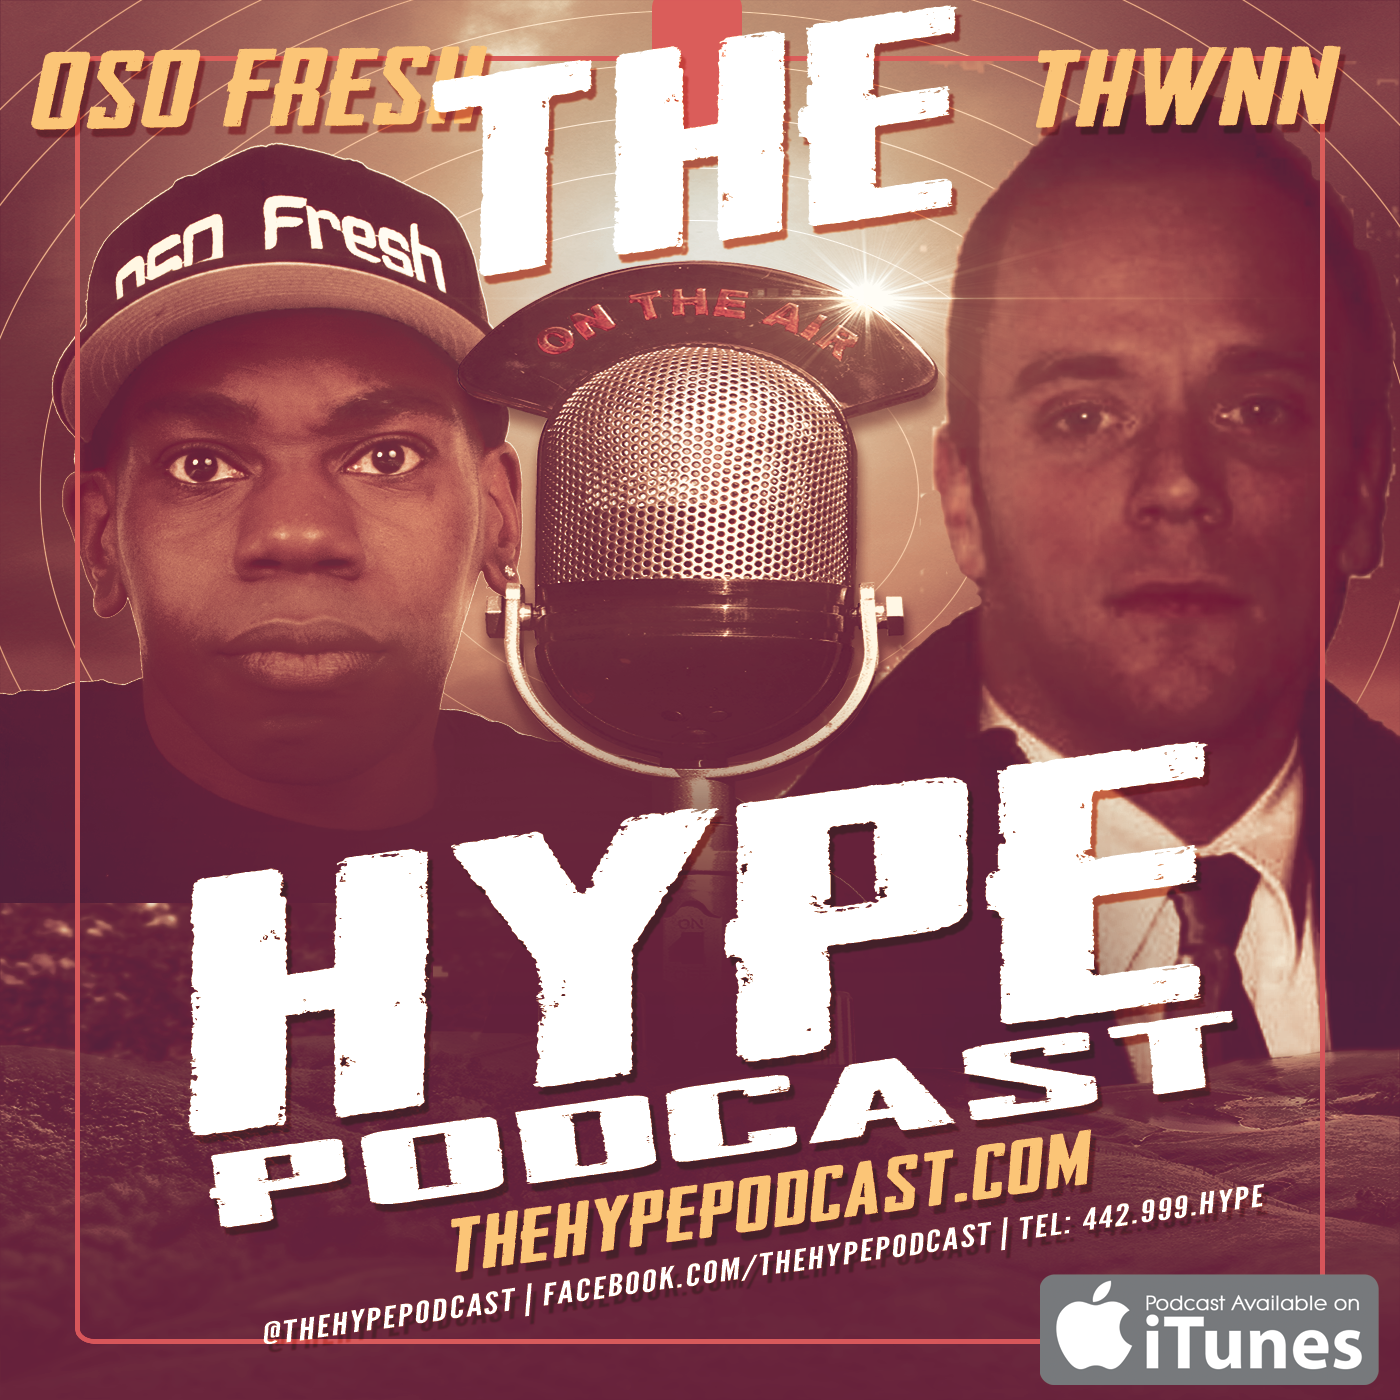 Artwork for The Hype podcast episode 1019 19 minutes of funk